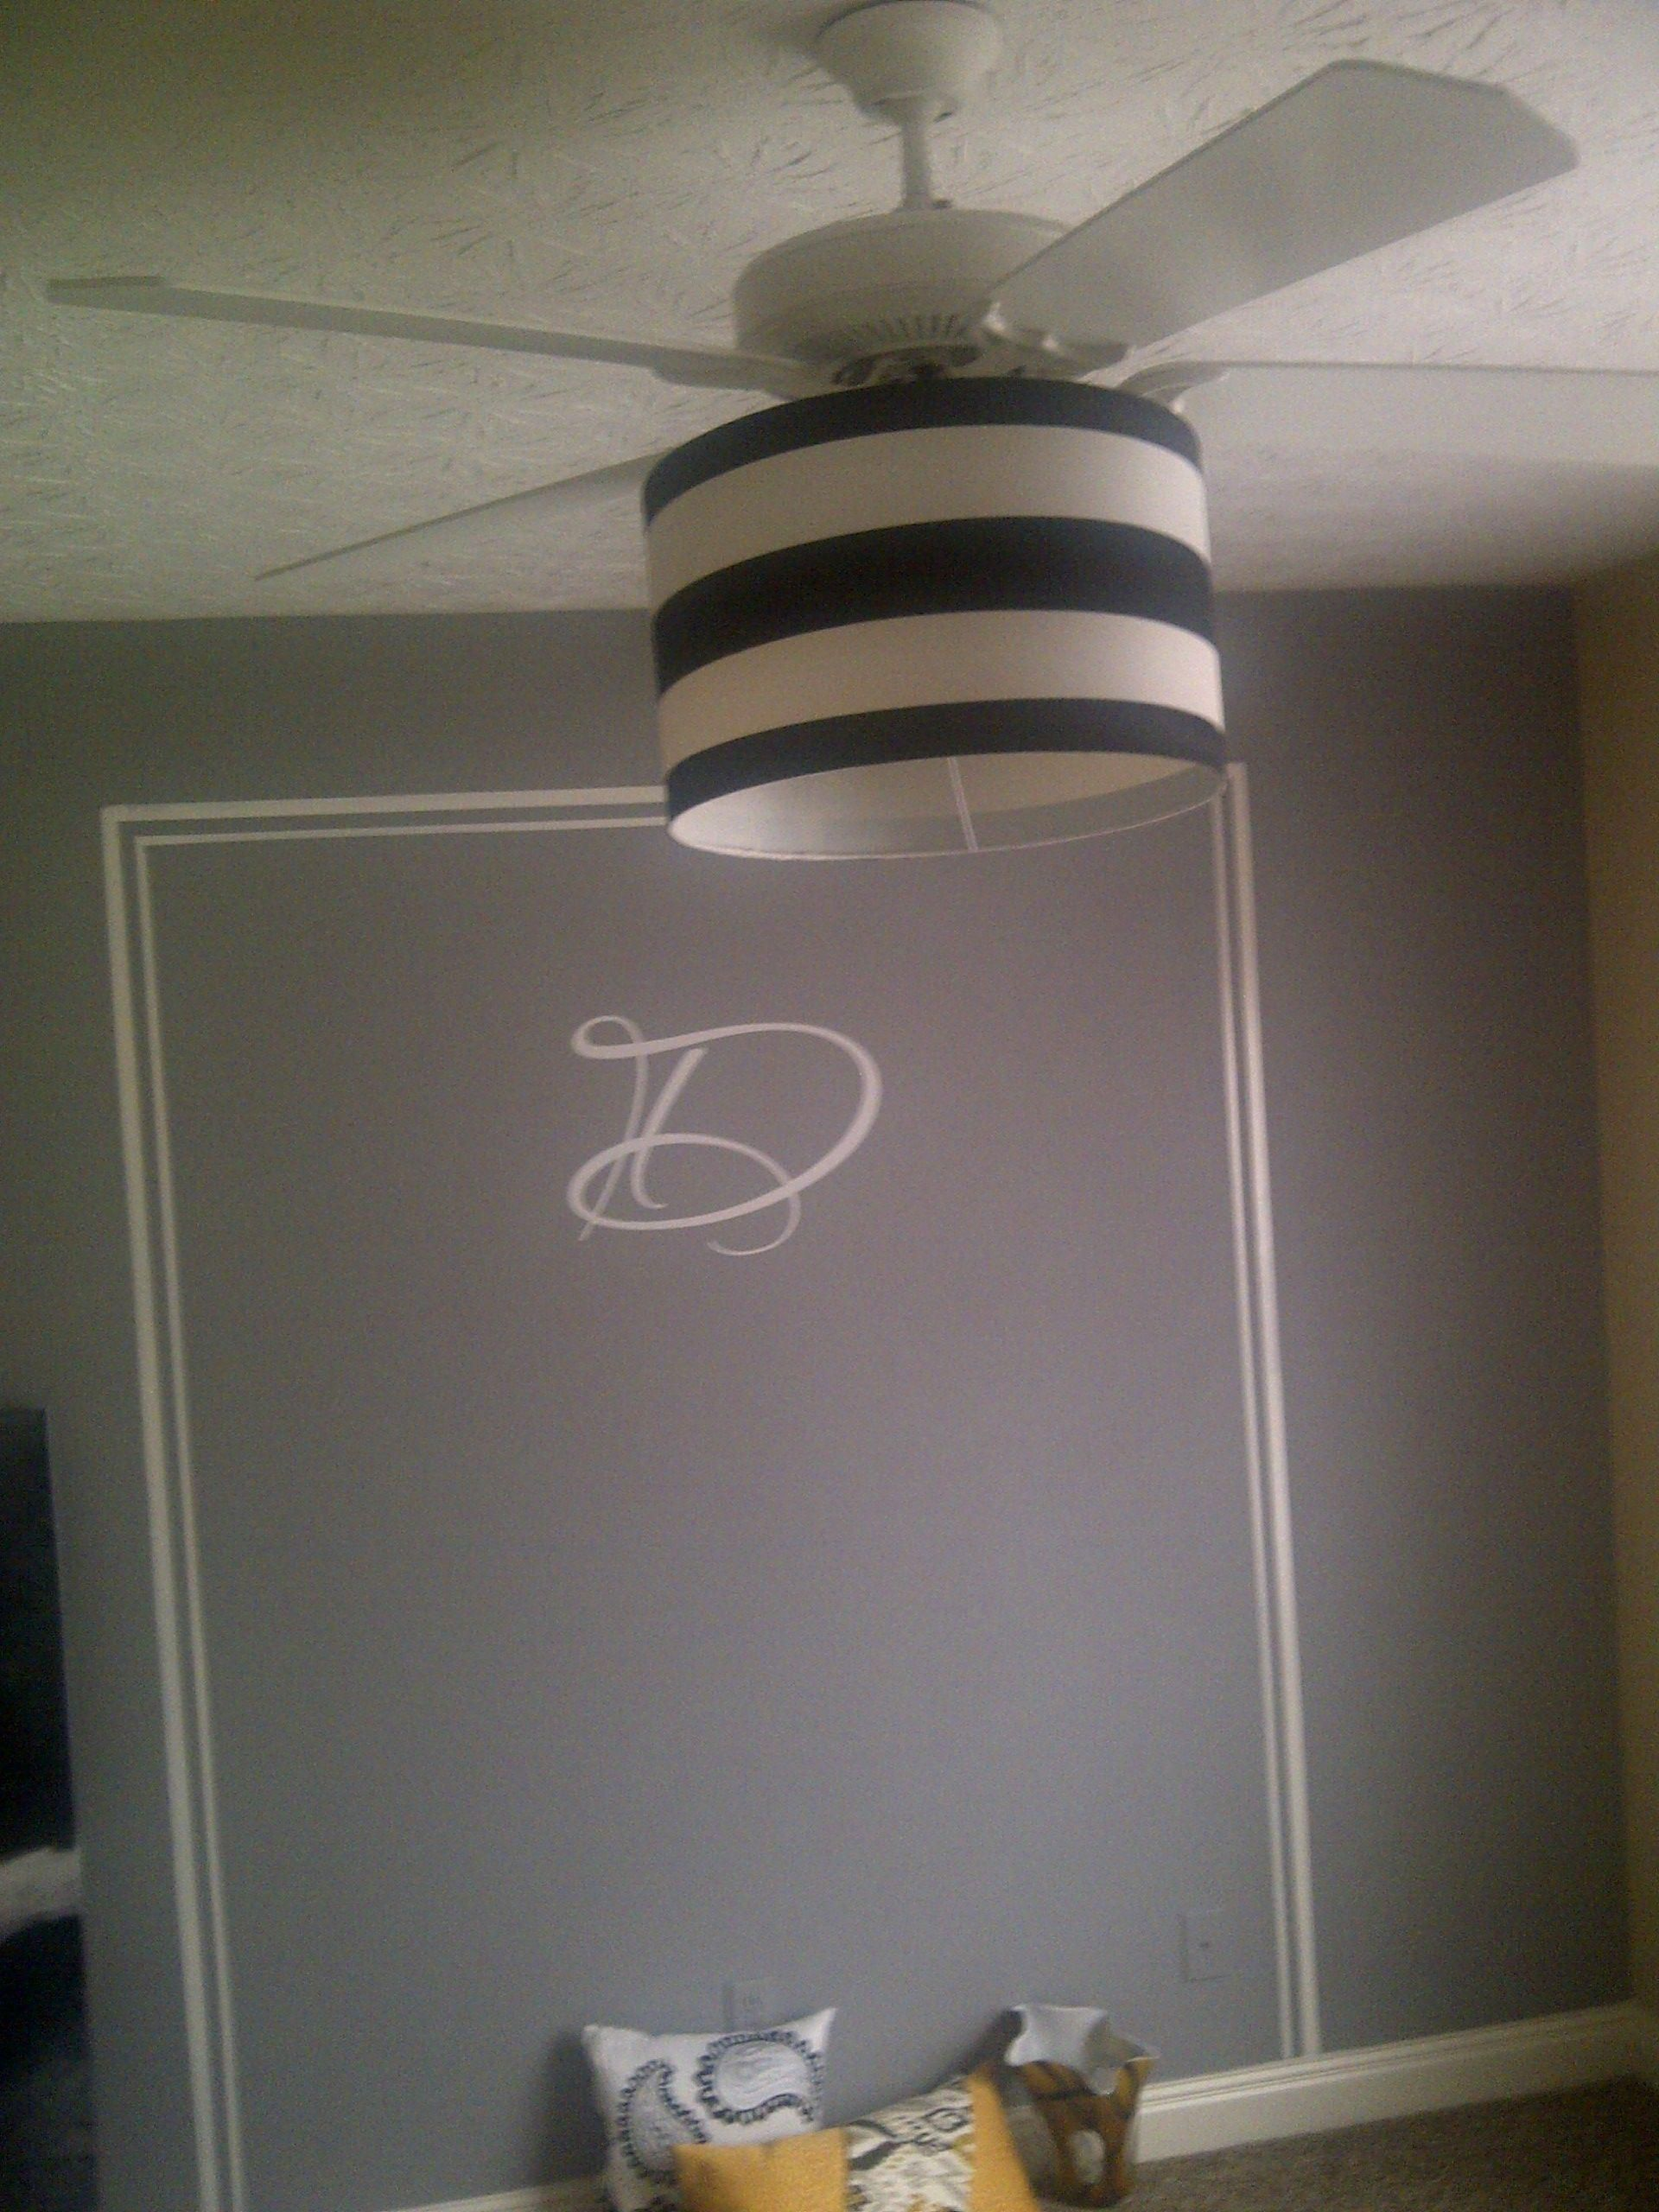 Update A Ceiling Fan With A Drum Shade I Simply Used Twine And Tied In Place On The Existing Hardware To Create A F Ventiladores De Techo Ventilador Techo